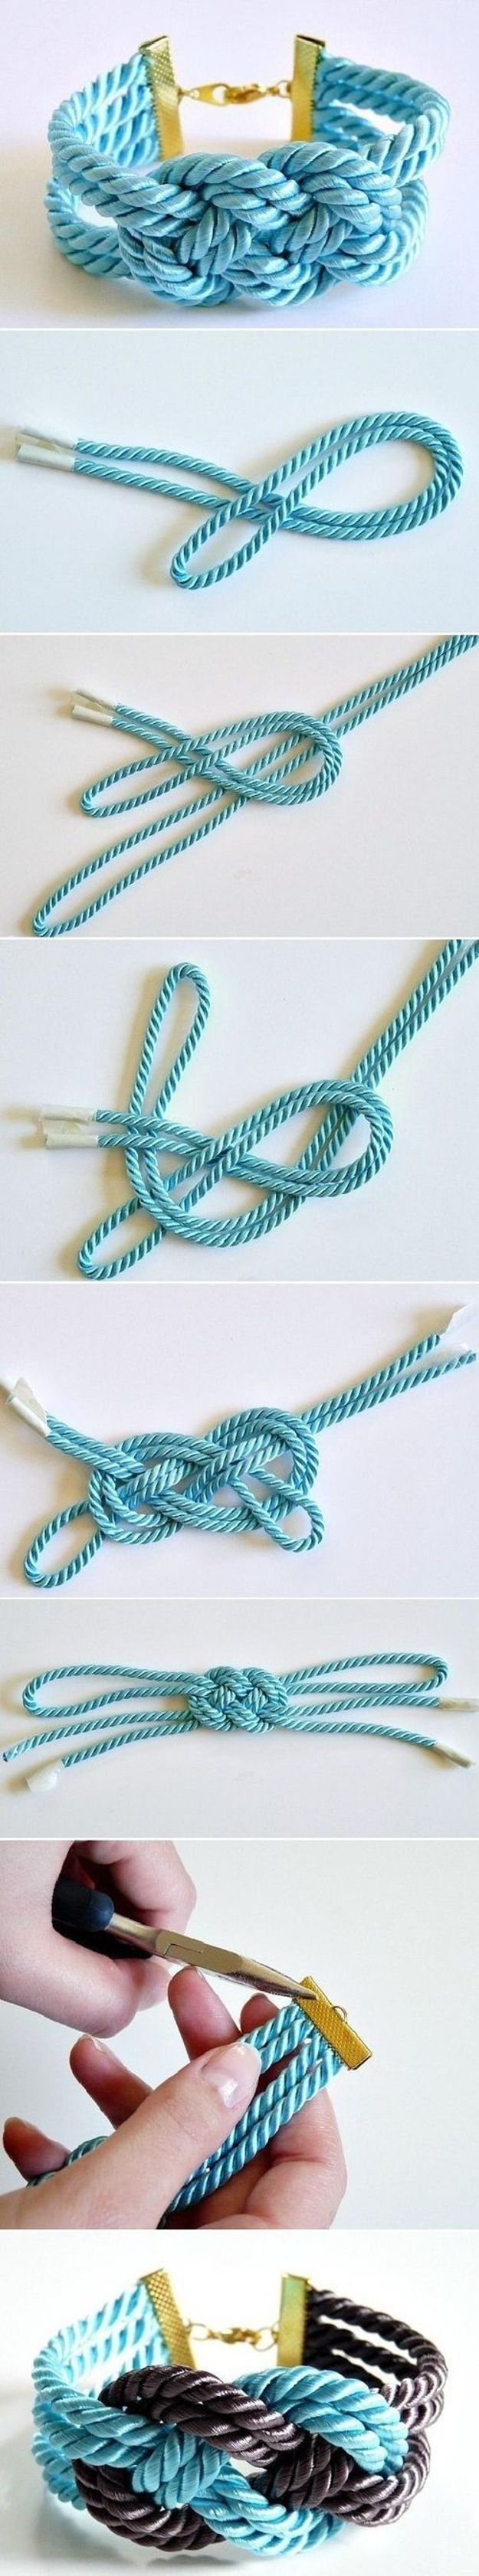 DIY Bracelets Easy Tutorials! DIY Rope Bracelets and Cool Jewelry Crafts Projects by DIY Ready at http://diyready.com/16-cool-diy-bracelets/